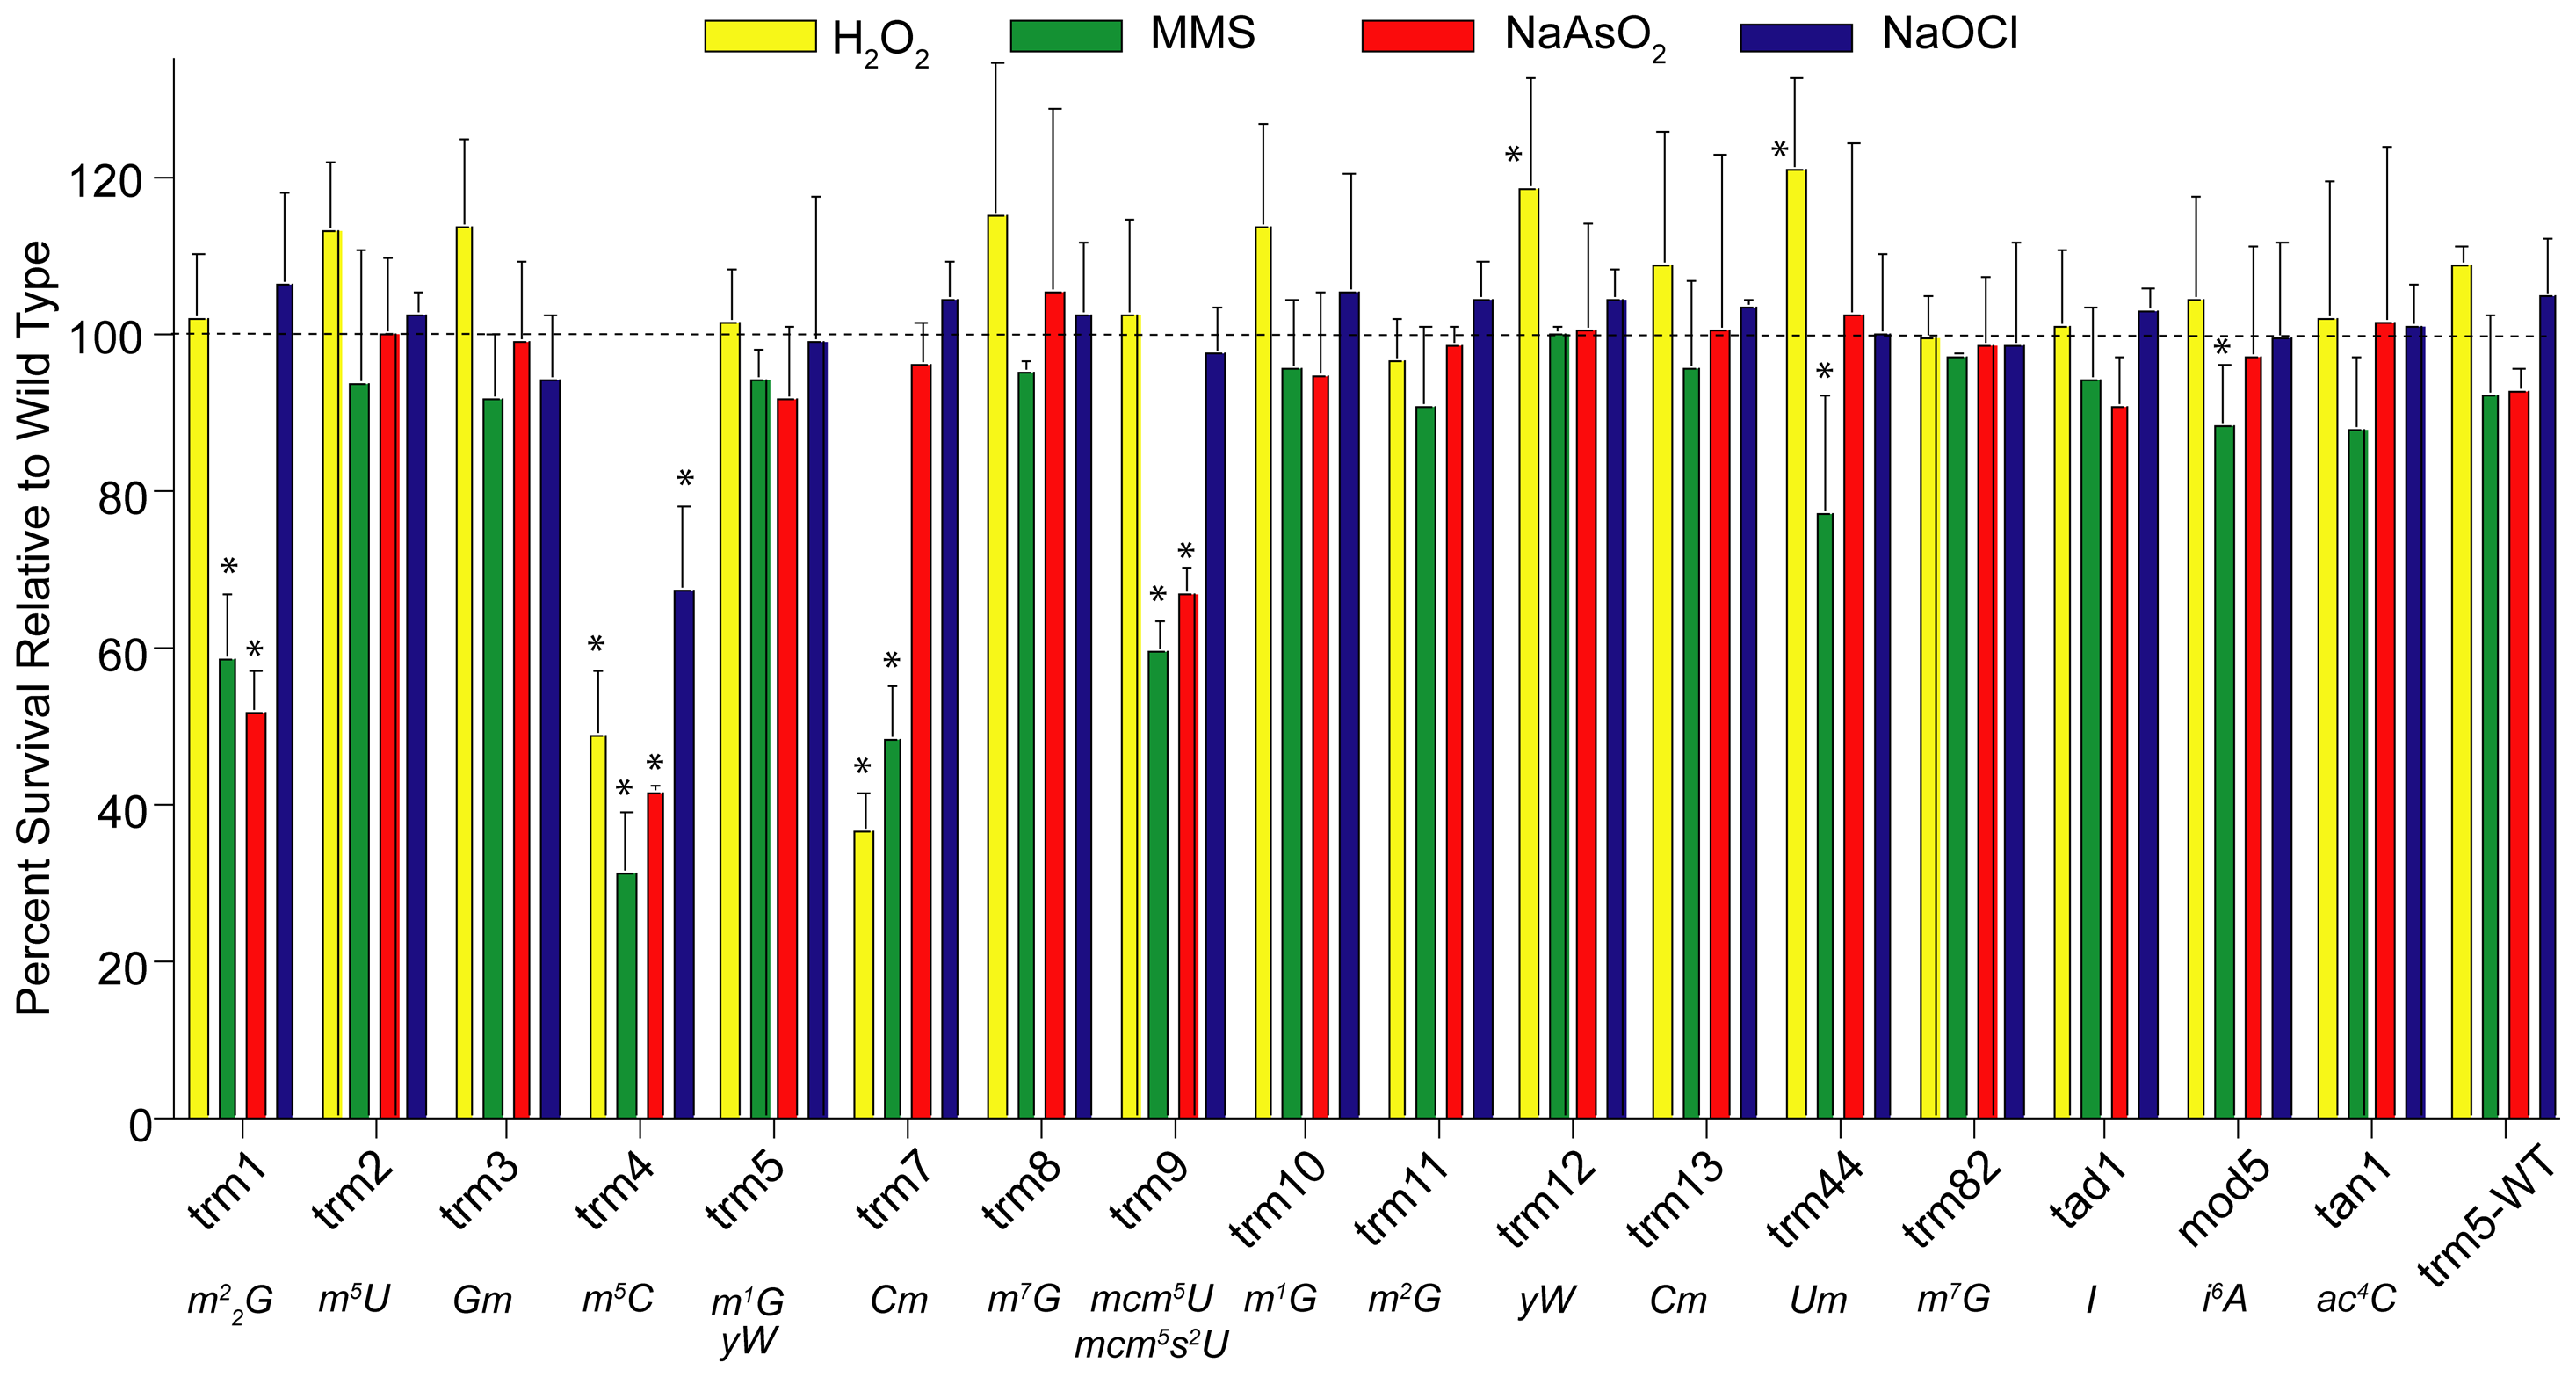 Phenotypic analysis of cytotoxicity induced by MMS, NaOCl, H<sub>2</sub>O<sub>2</sub>, and NaAsO<sub>2</sub> in yeast mutants lacking <i>trm</i> tRNA methyltransferase and other modification genes.